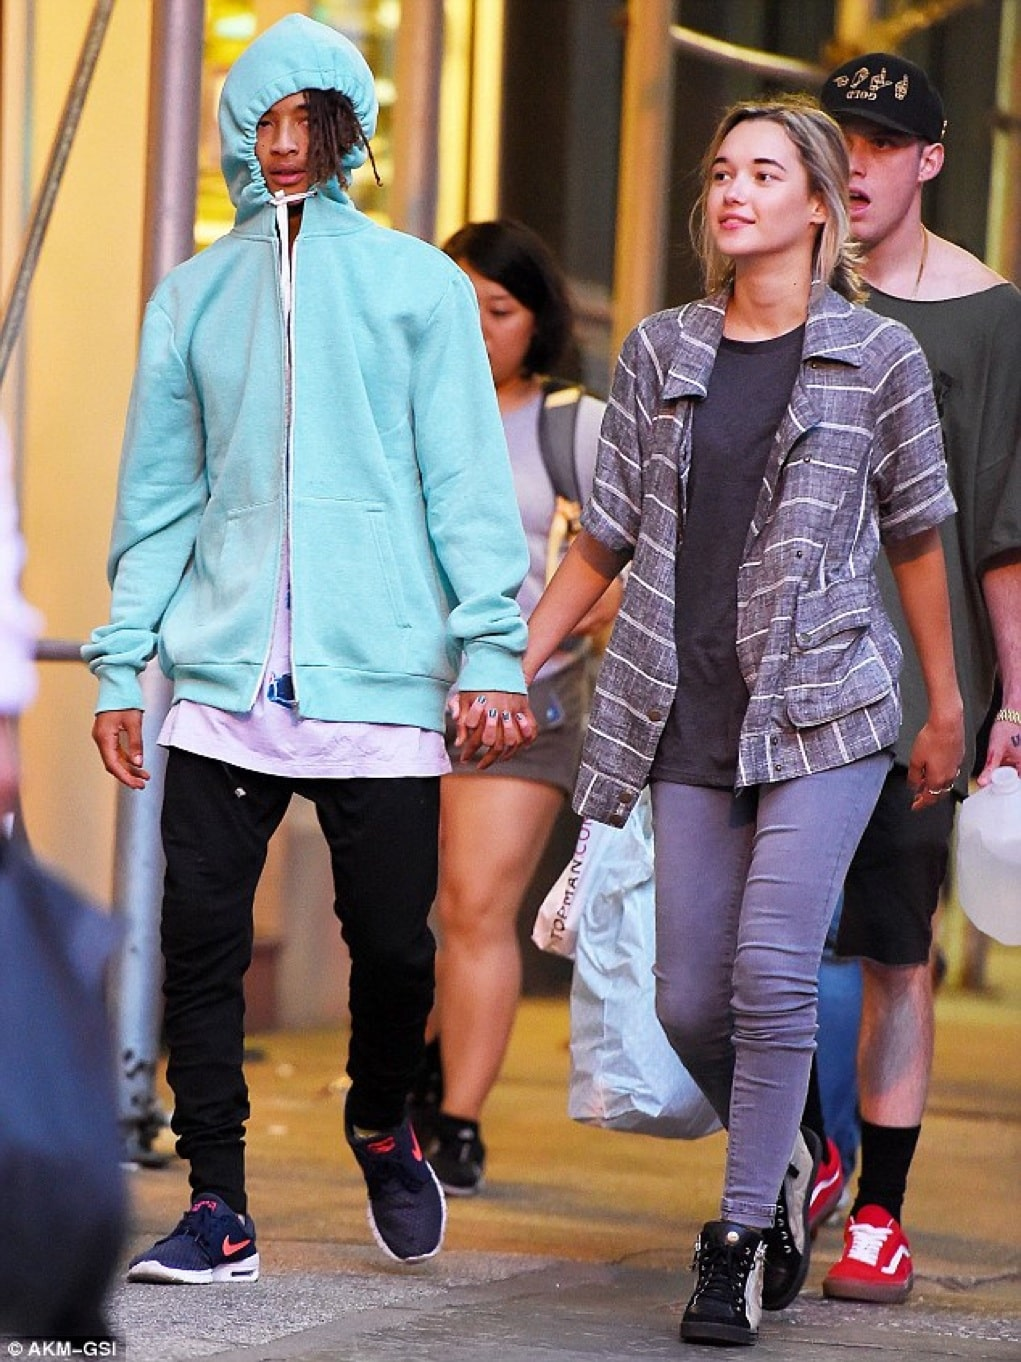 jaden smith's new girlfriend has a criminal past